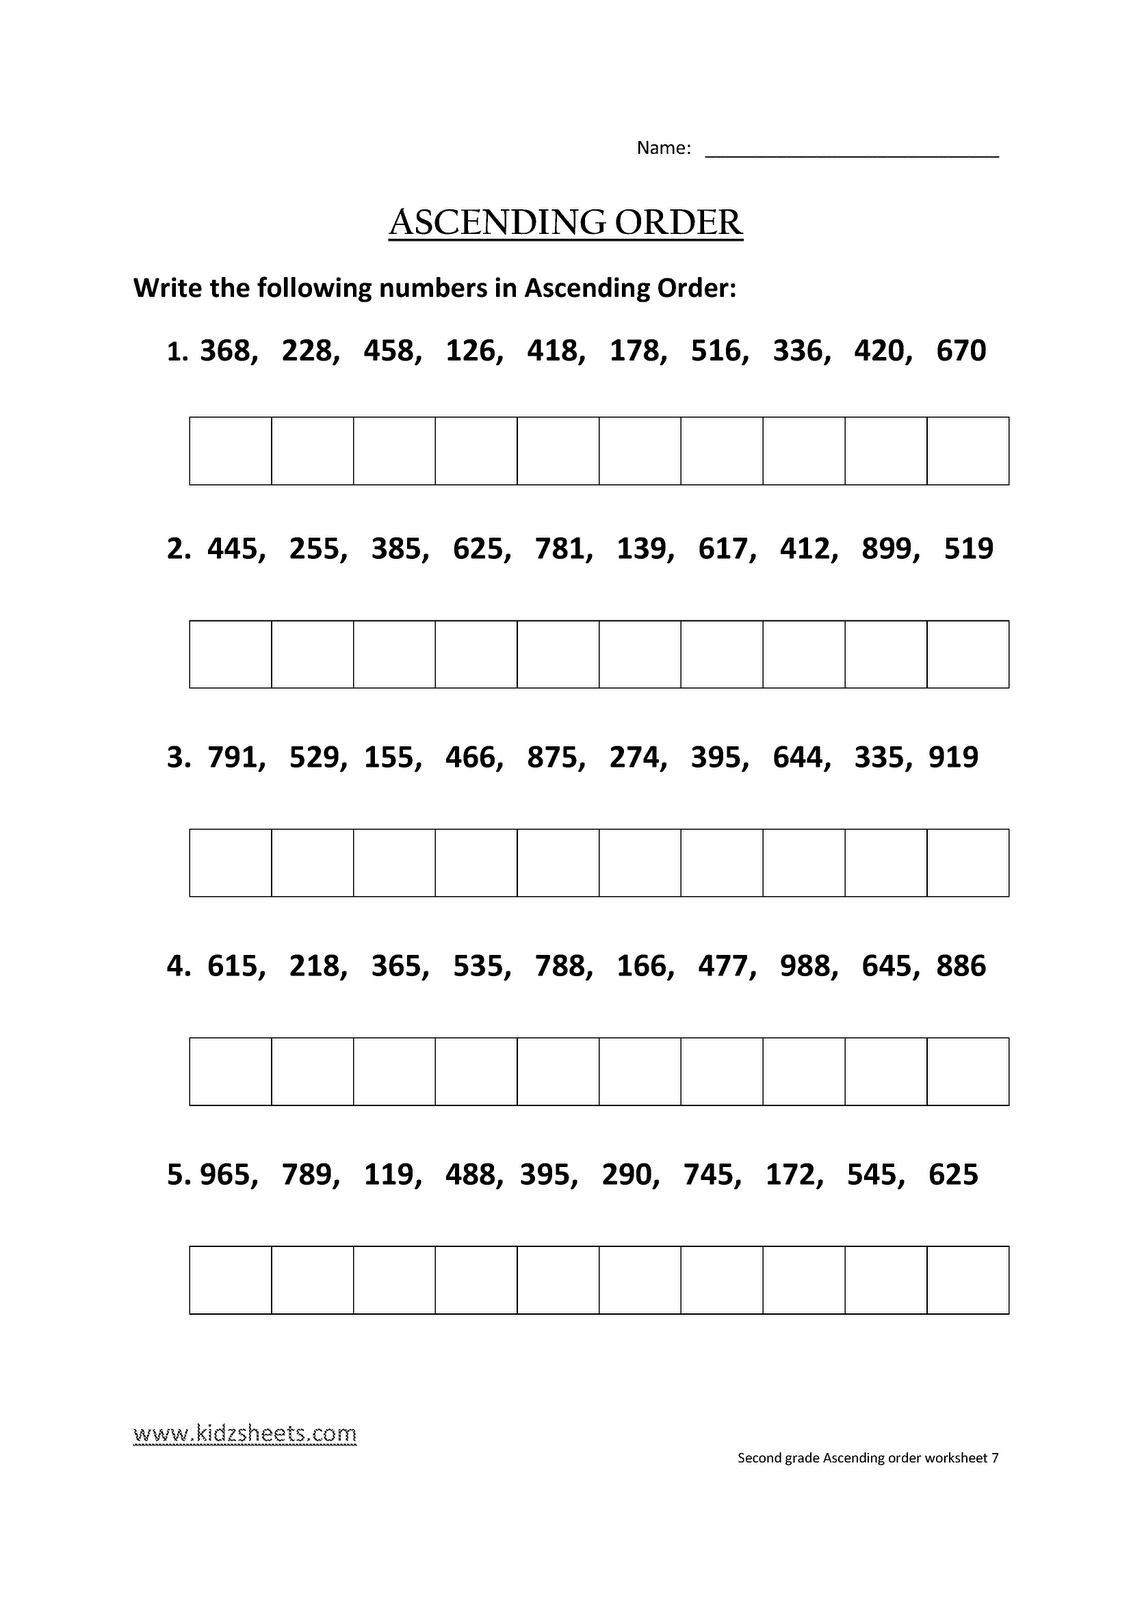 Free Printable Grade 2 Worksheets free fifth grade math worksheets – Math for Grade 2 Printable Worksheets